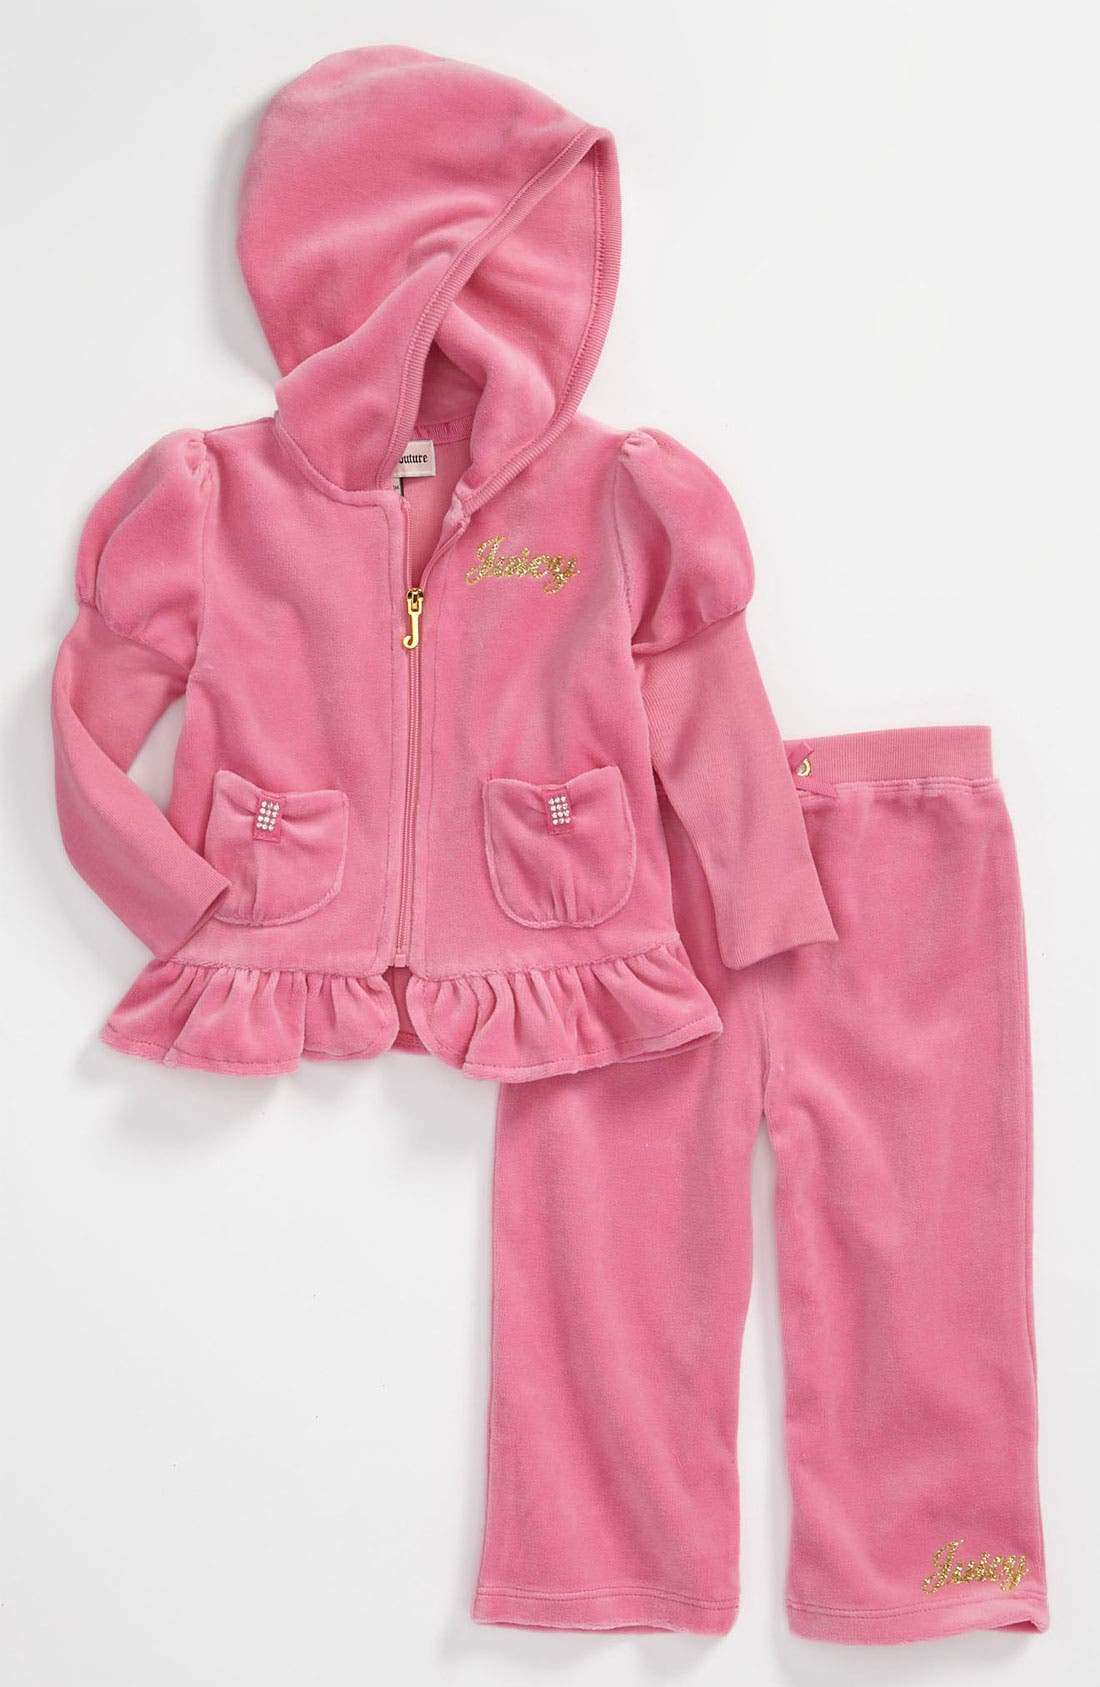 Main Image - Juicy Couture Velour Hoodie & Pants (Infant)